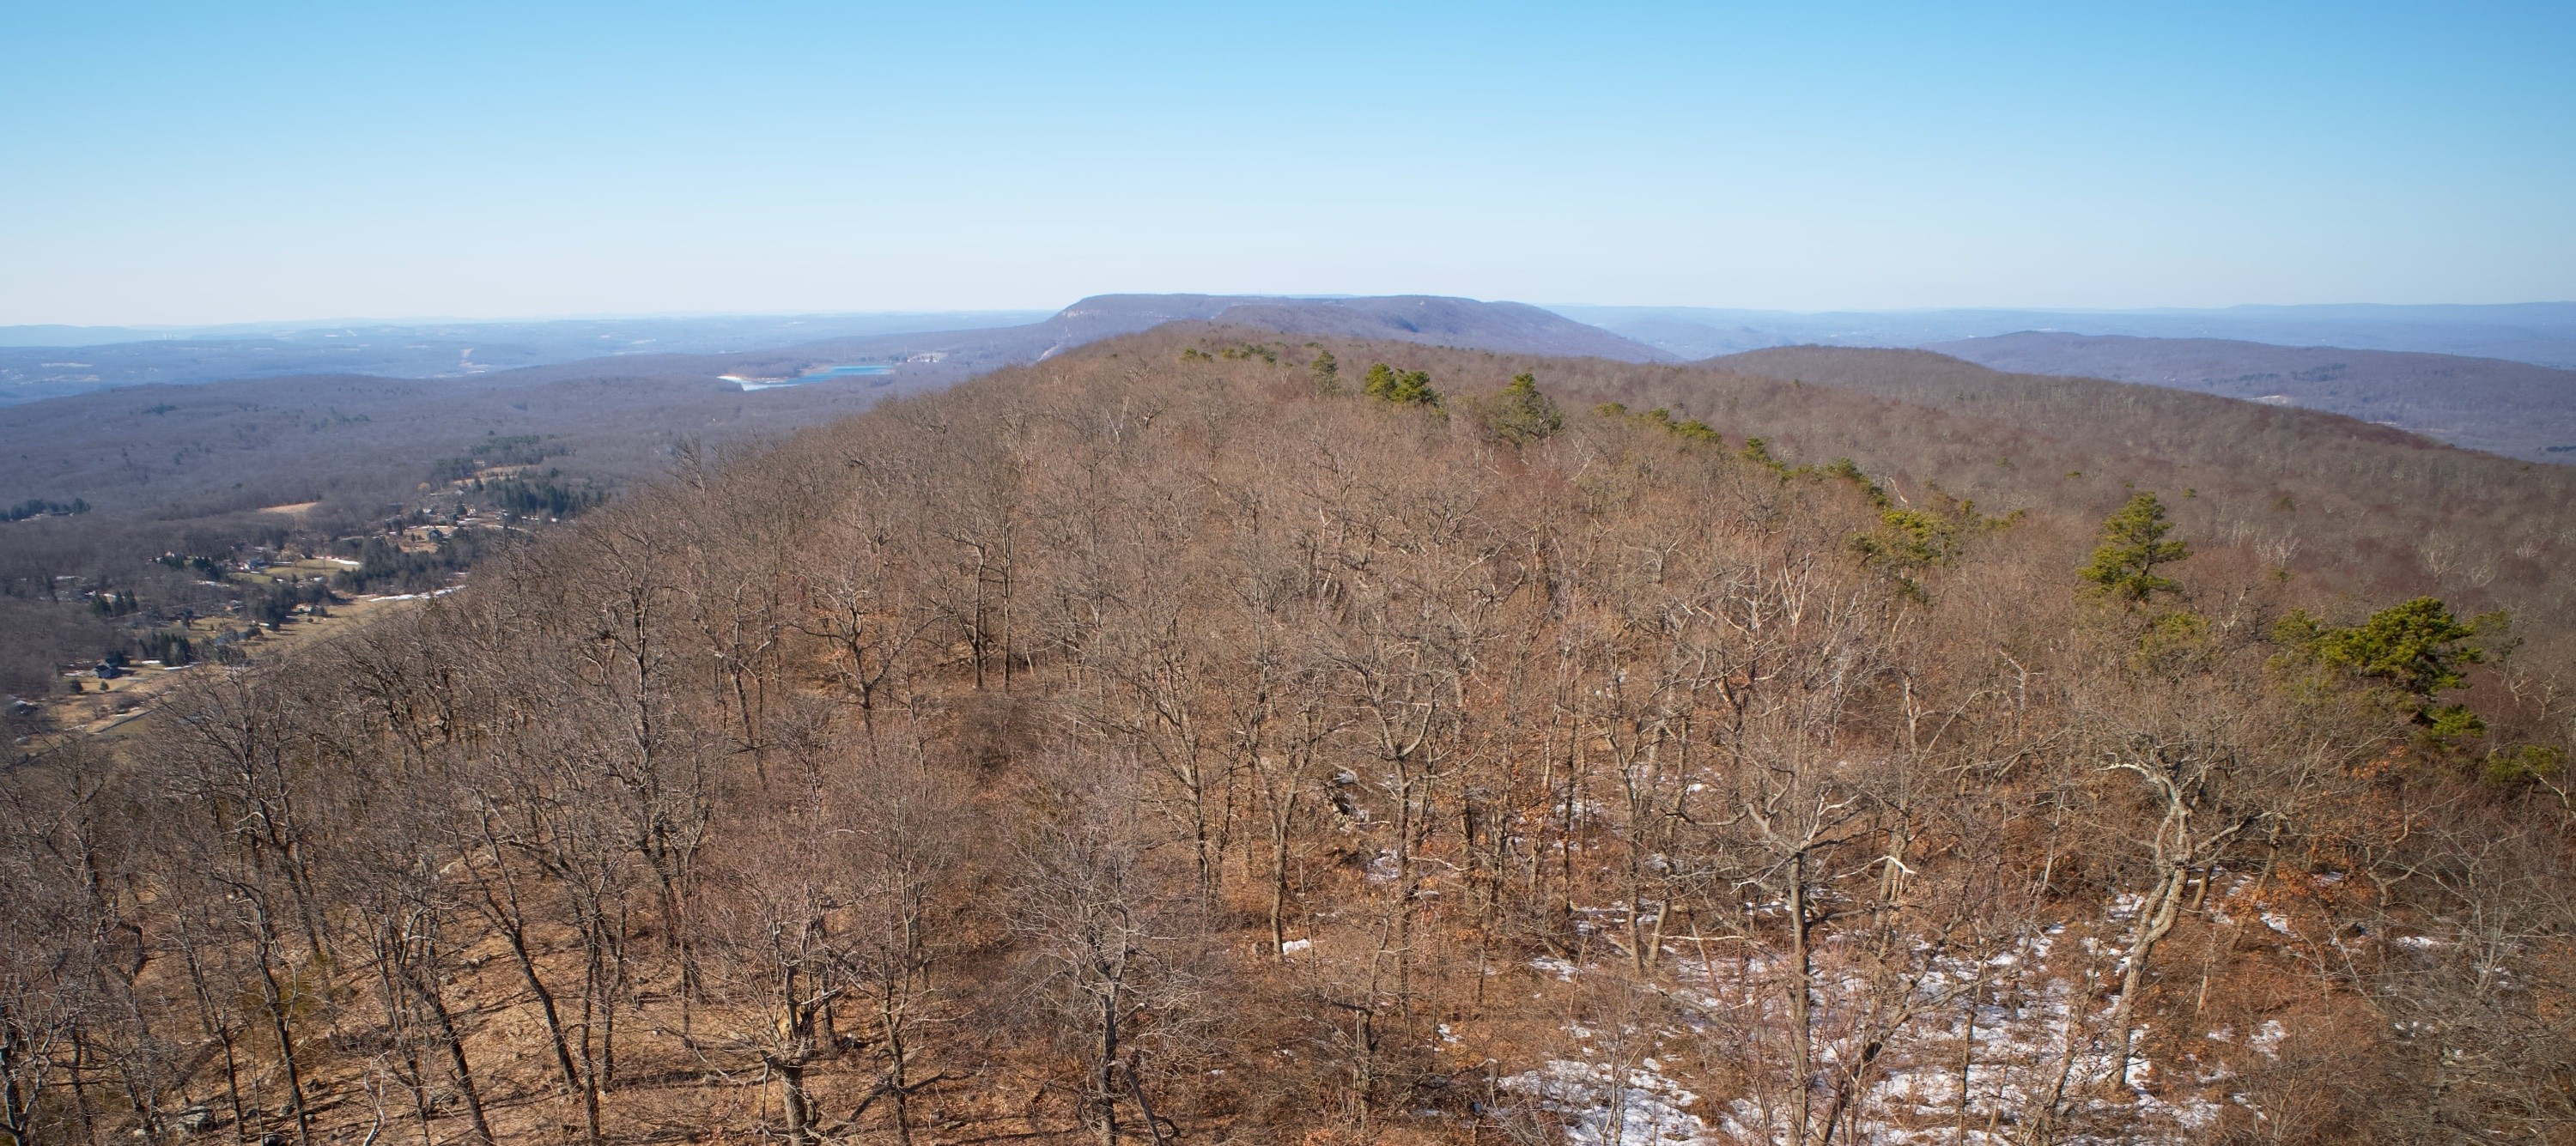 View south from Catfish Fire Tower